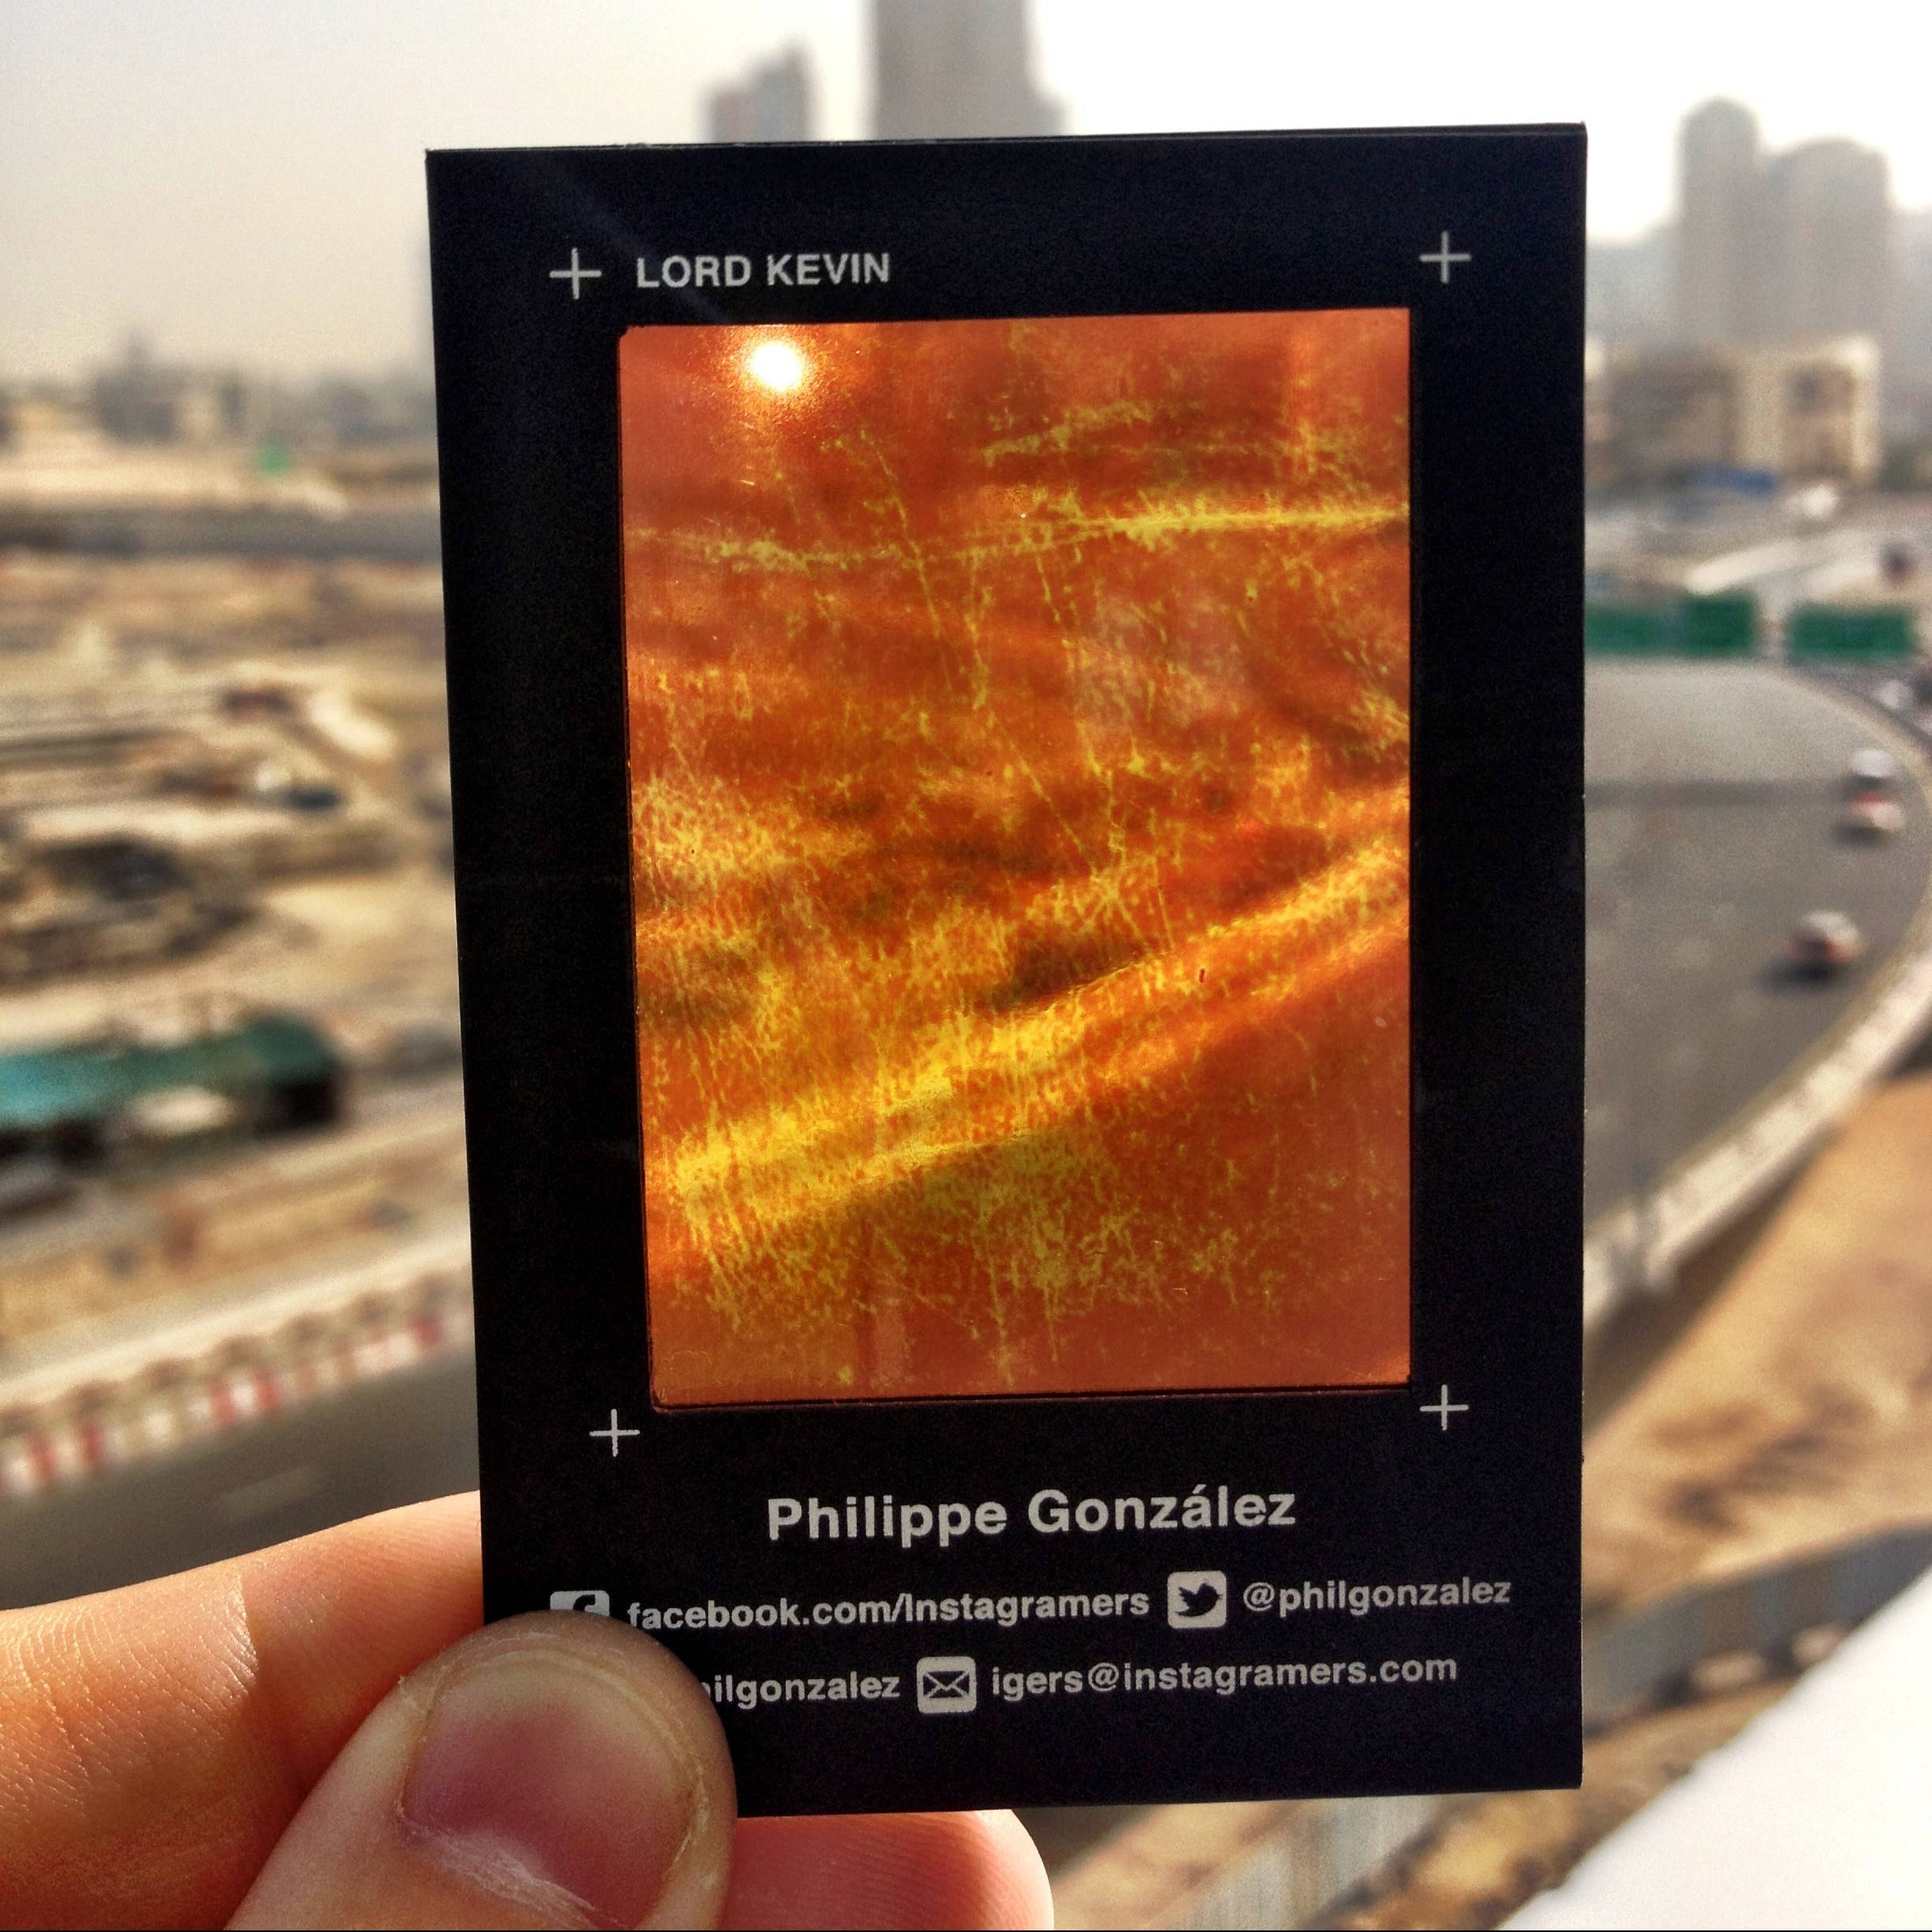 Trendy New Business Cards Inspired on Instagram Filters